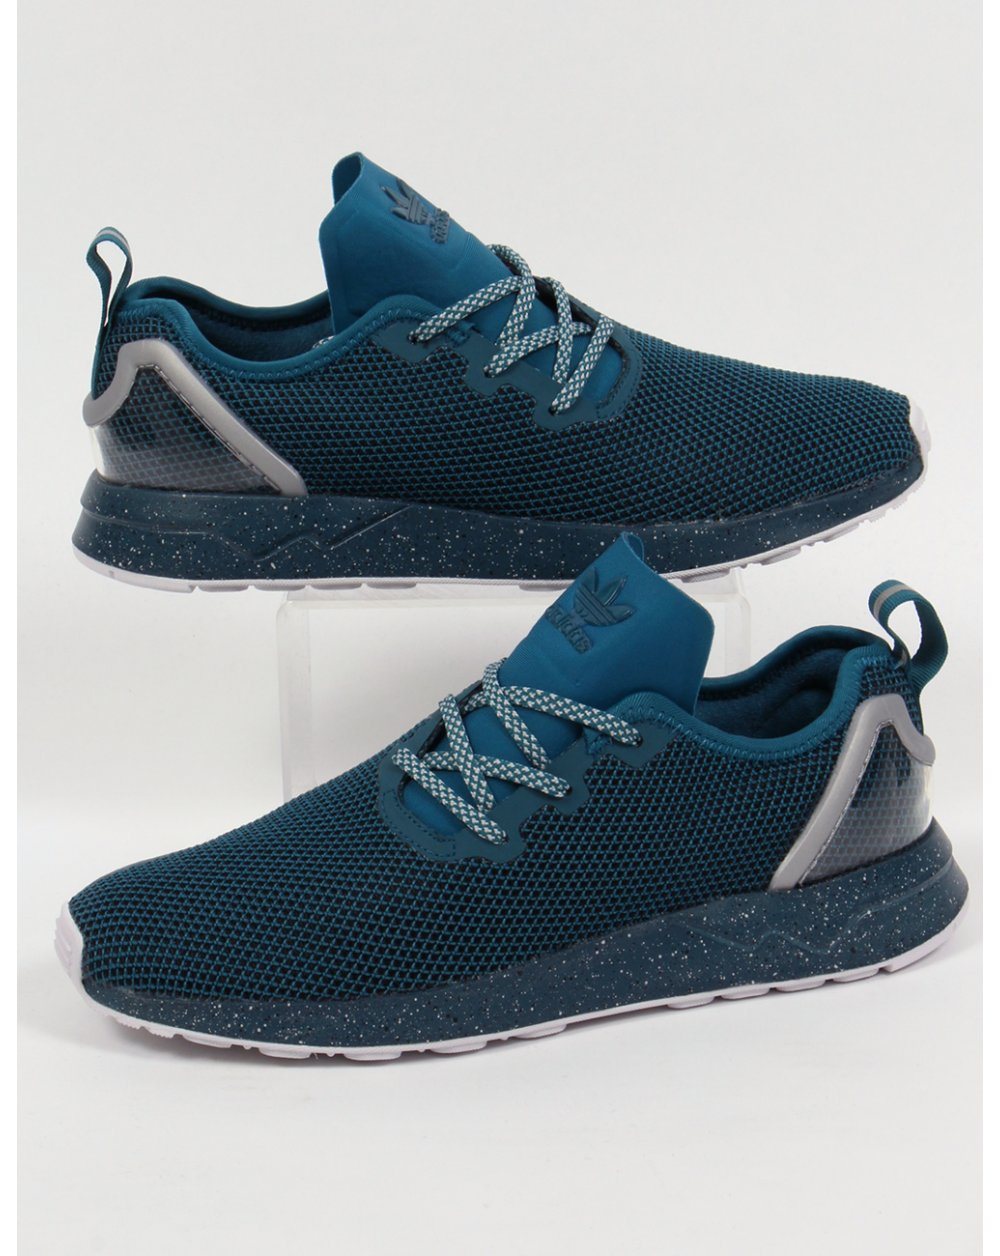 6c8595d3f adidas Trainers Adidas ZX Flux Racer Asym Trainers Serpent Blue